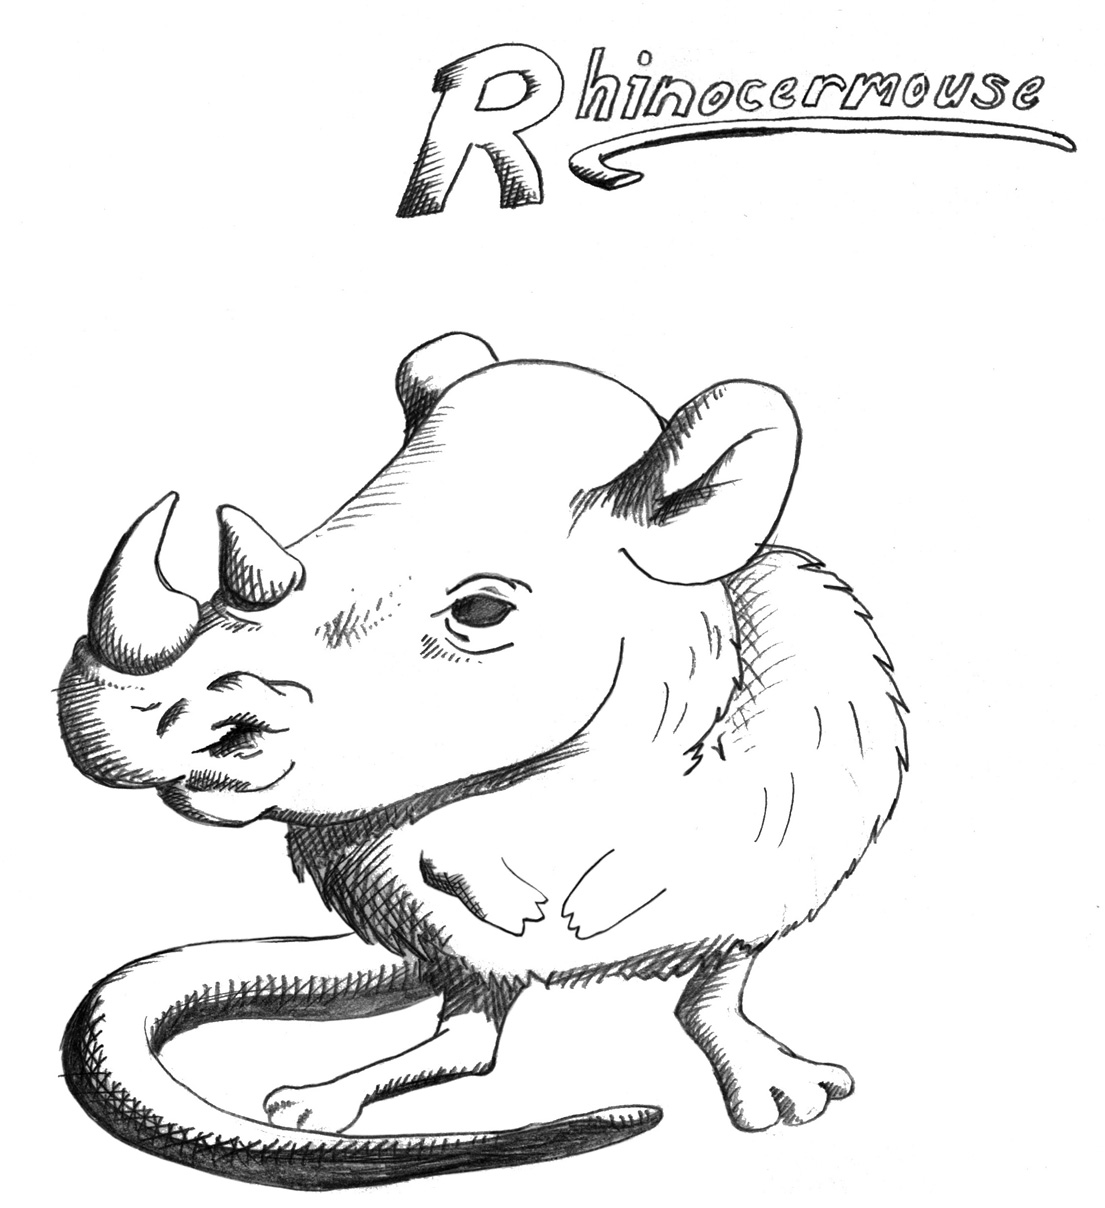 The Rhinocermouse